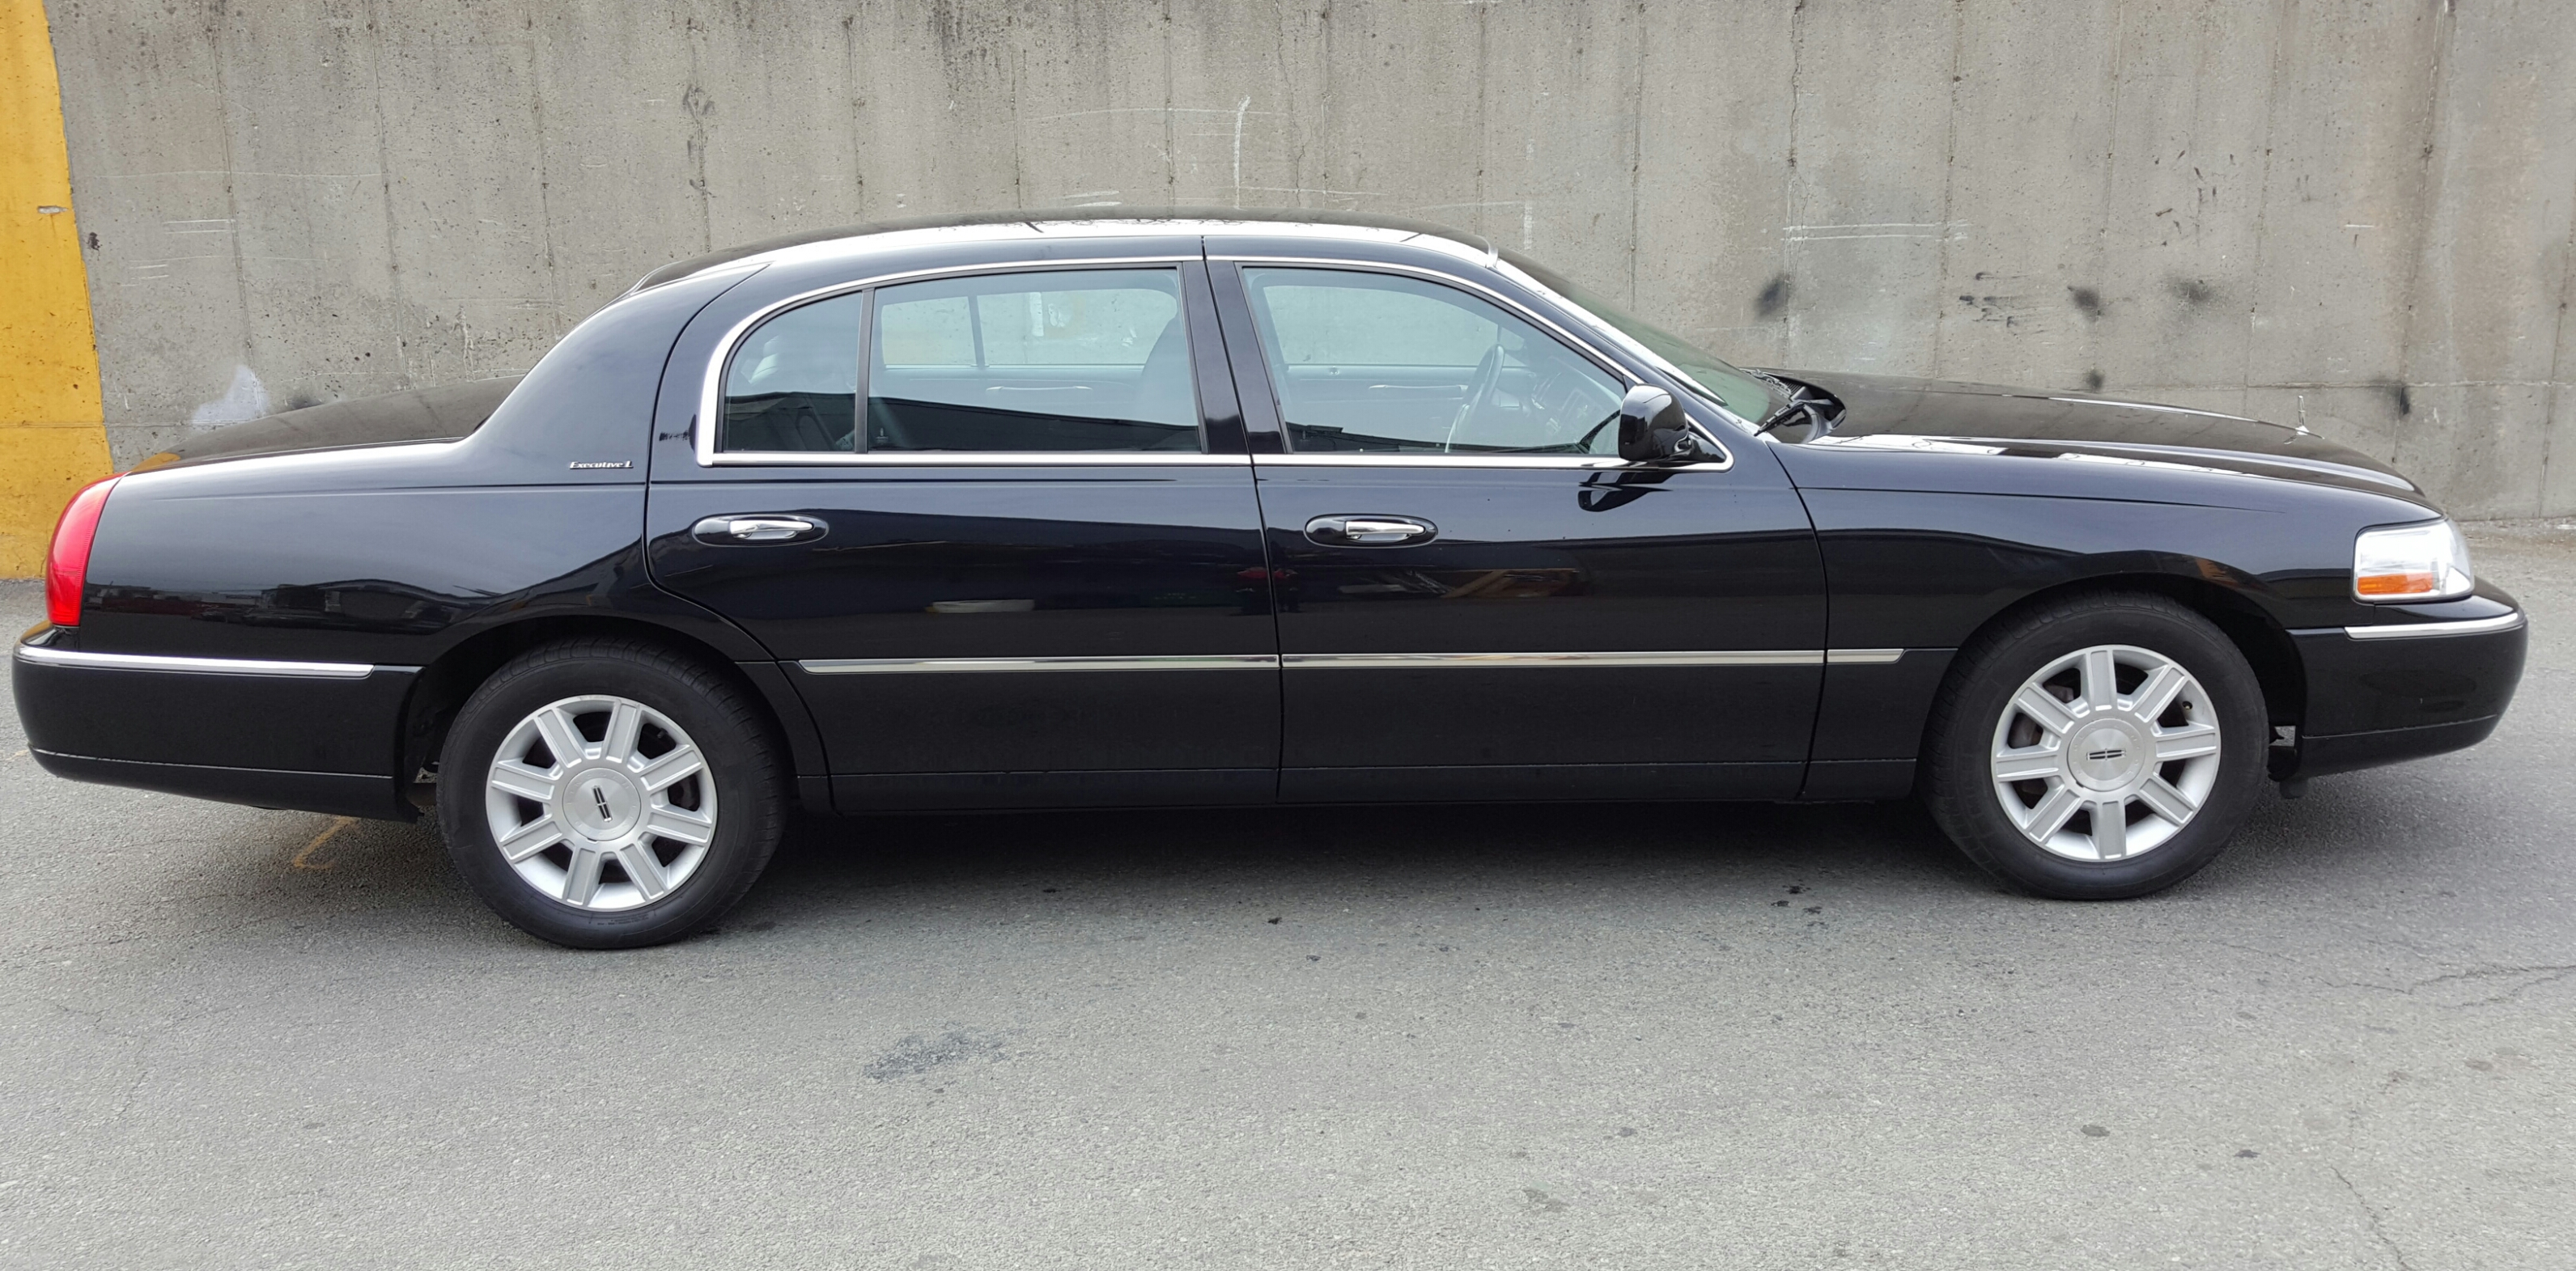 Picture Cars Advanced Search 1998 Lincoln Town Car Lowrider 2011